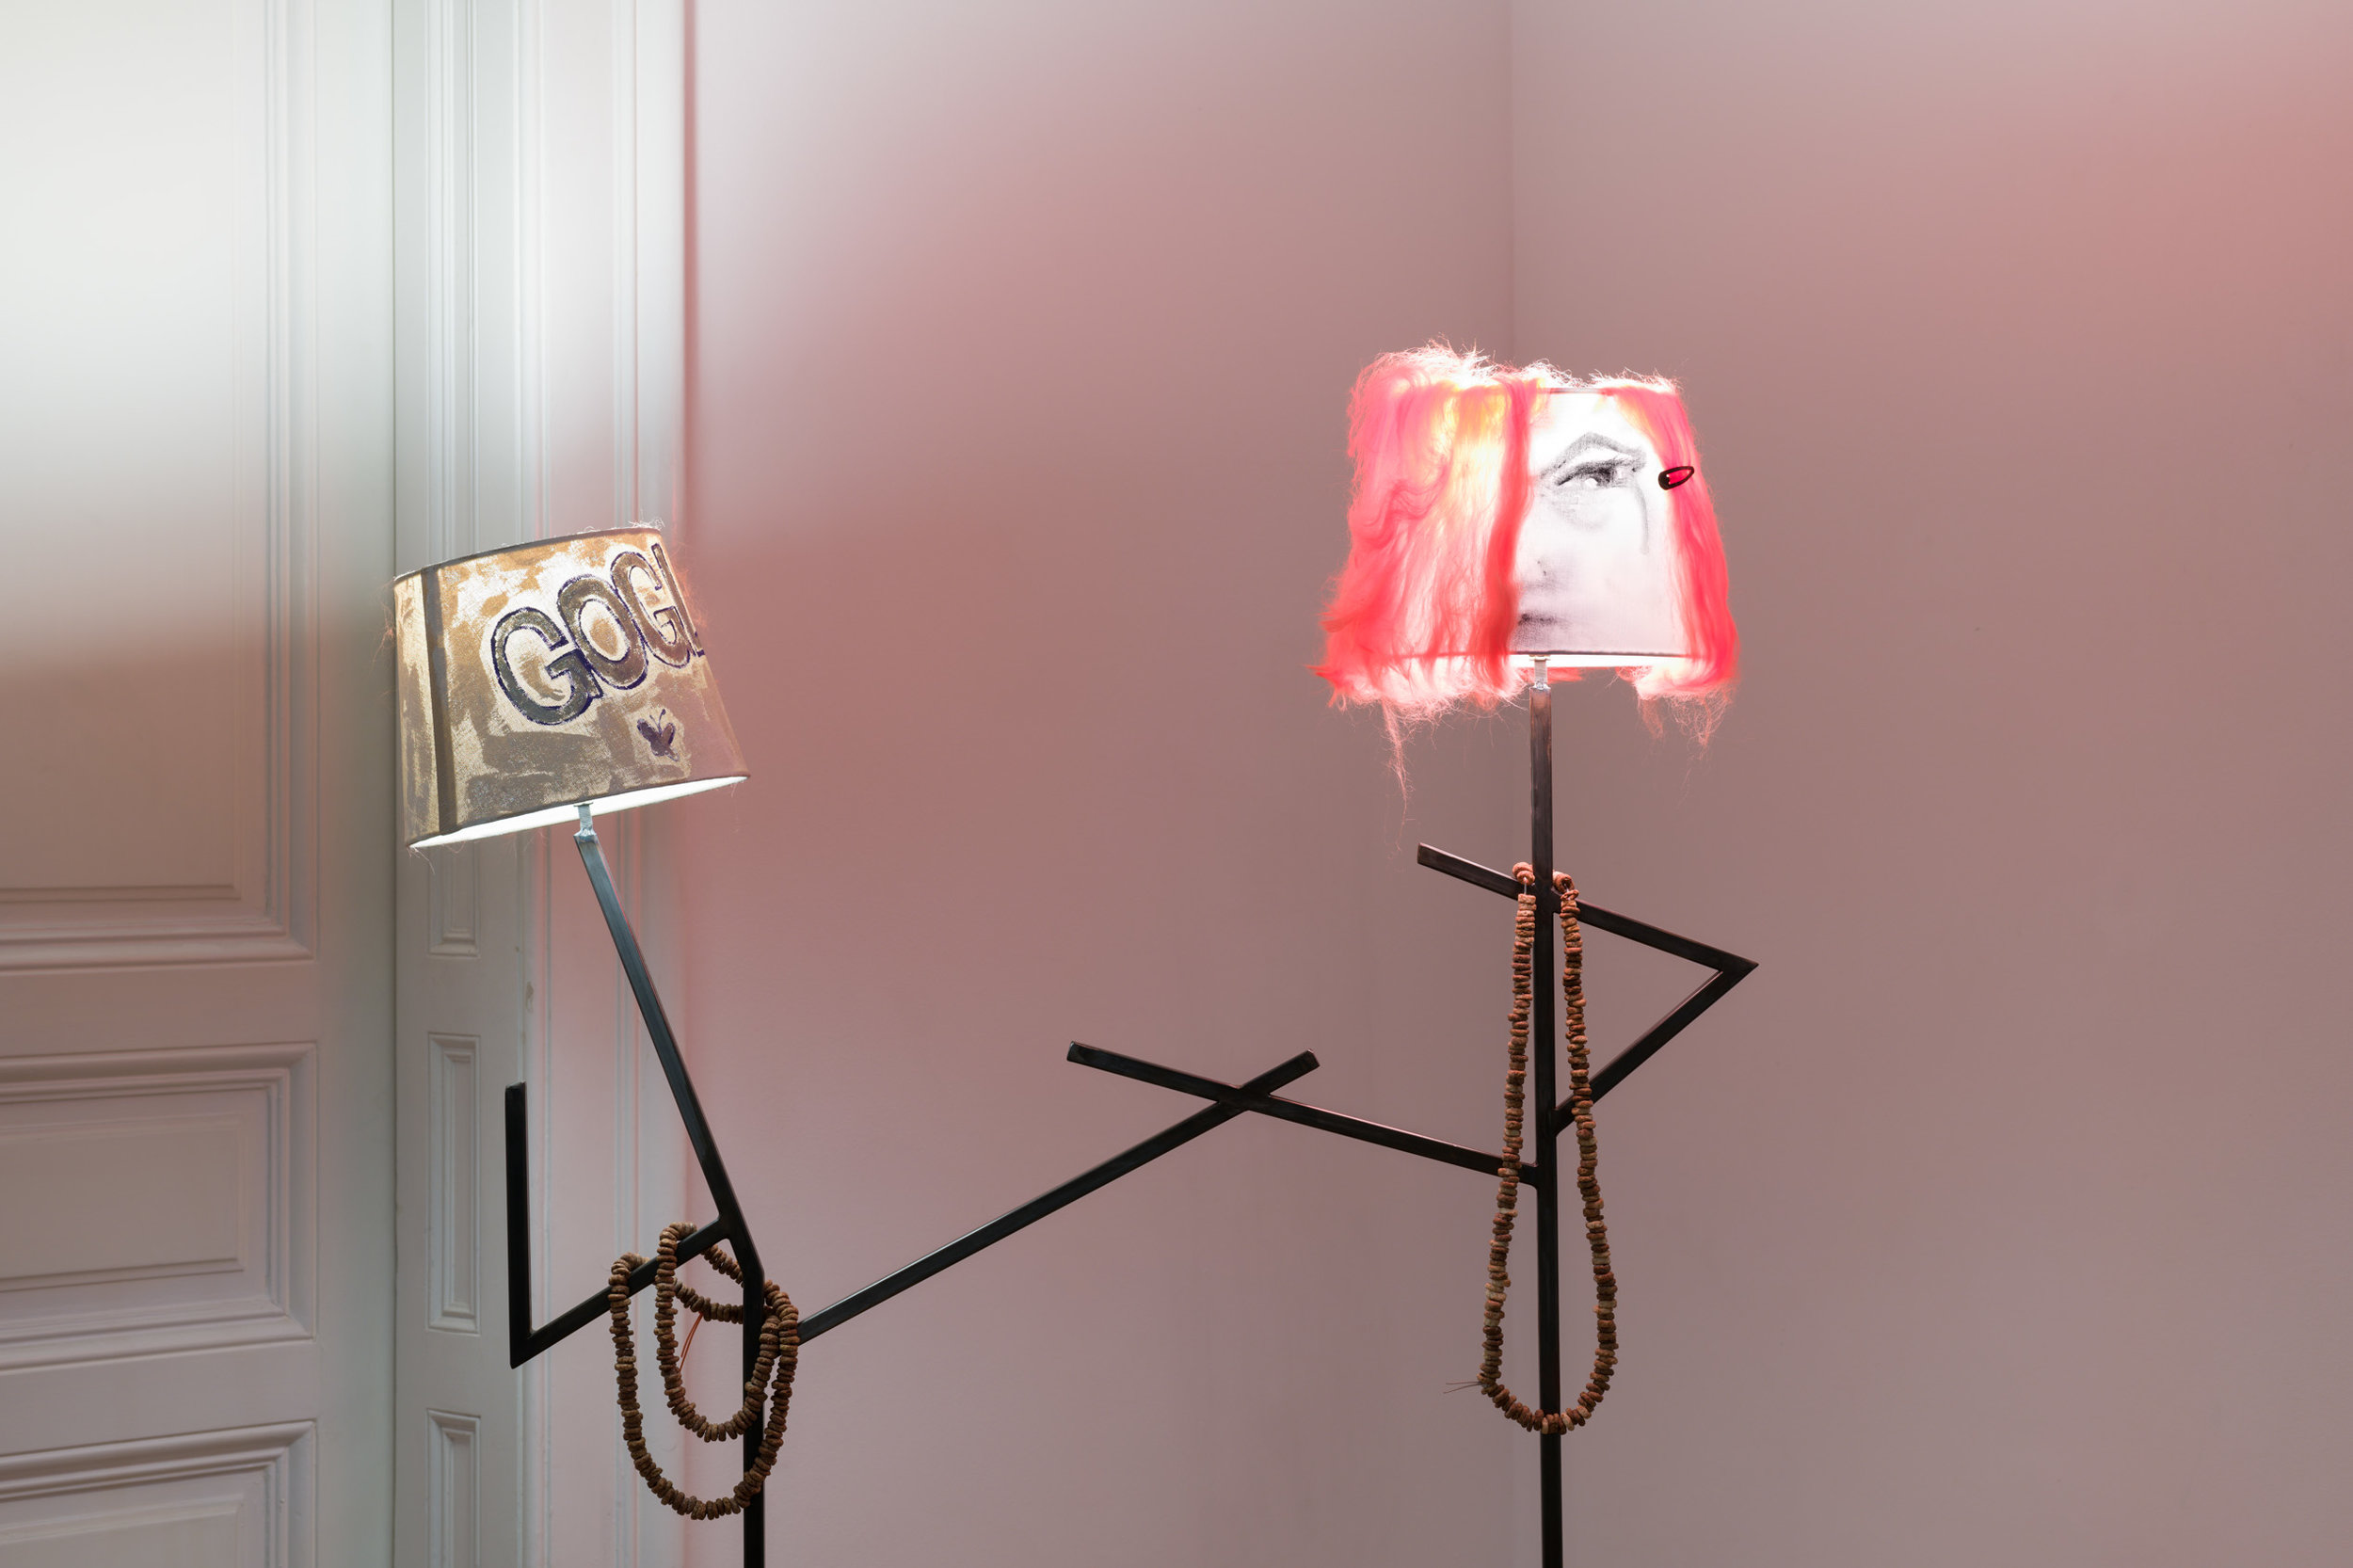 Sophie Gogl, Me as a Lamp, 2019